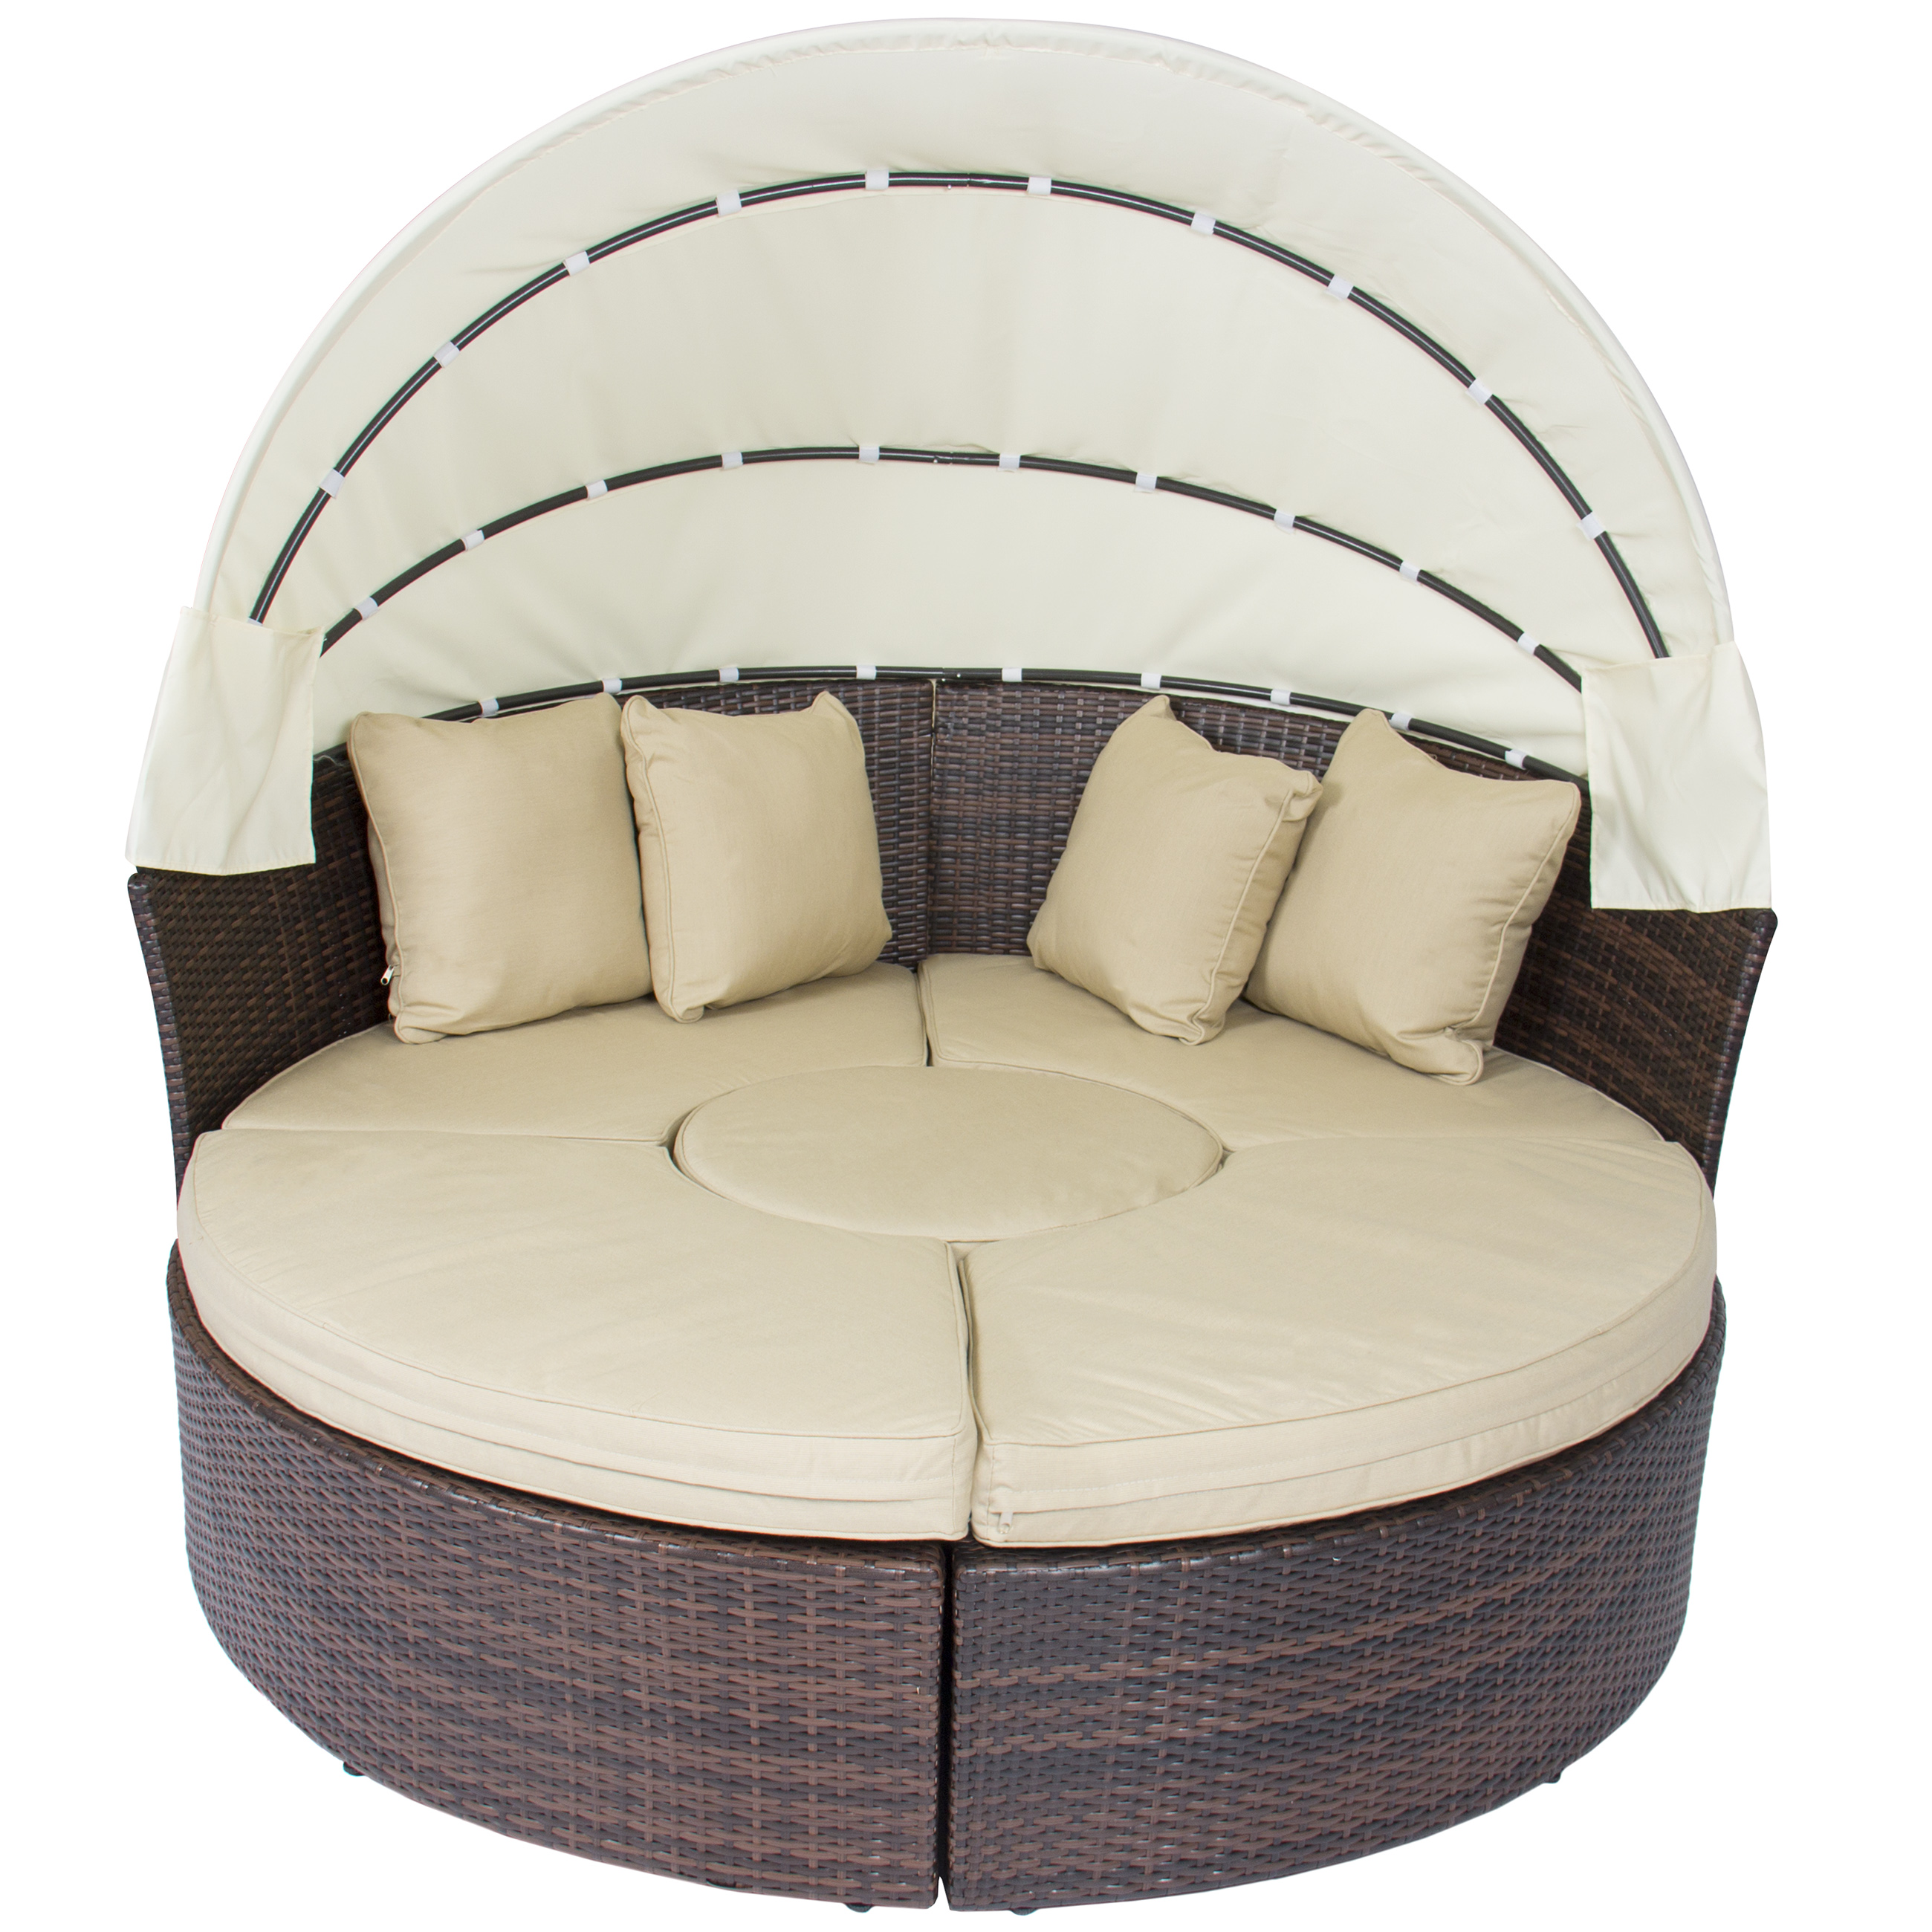 Outdoor Patio Sofa Furniture Round Retractable Canopy Daybed Brown     Outdoor Patio Sofa Furniture Round Retractable Canopy Daybed Brown Wicker  Rattan   Walmart com